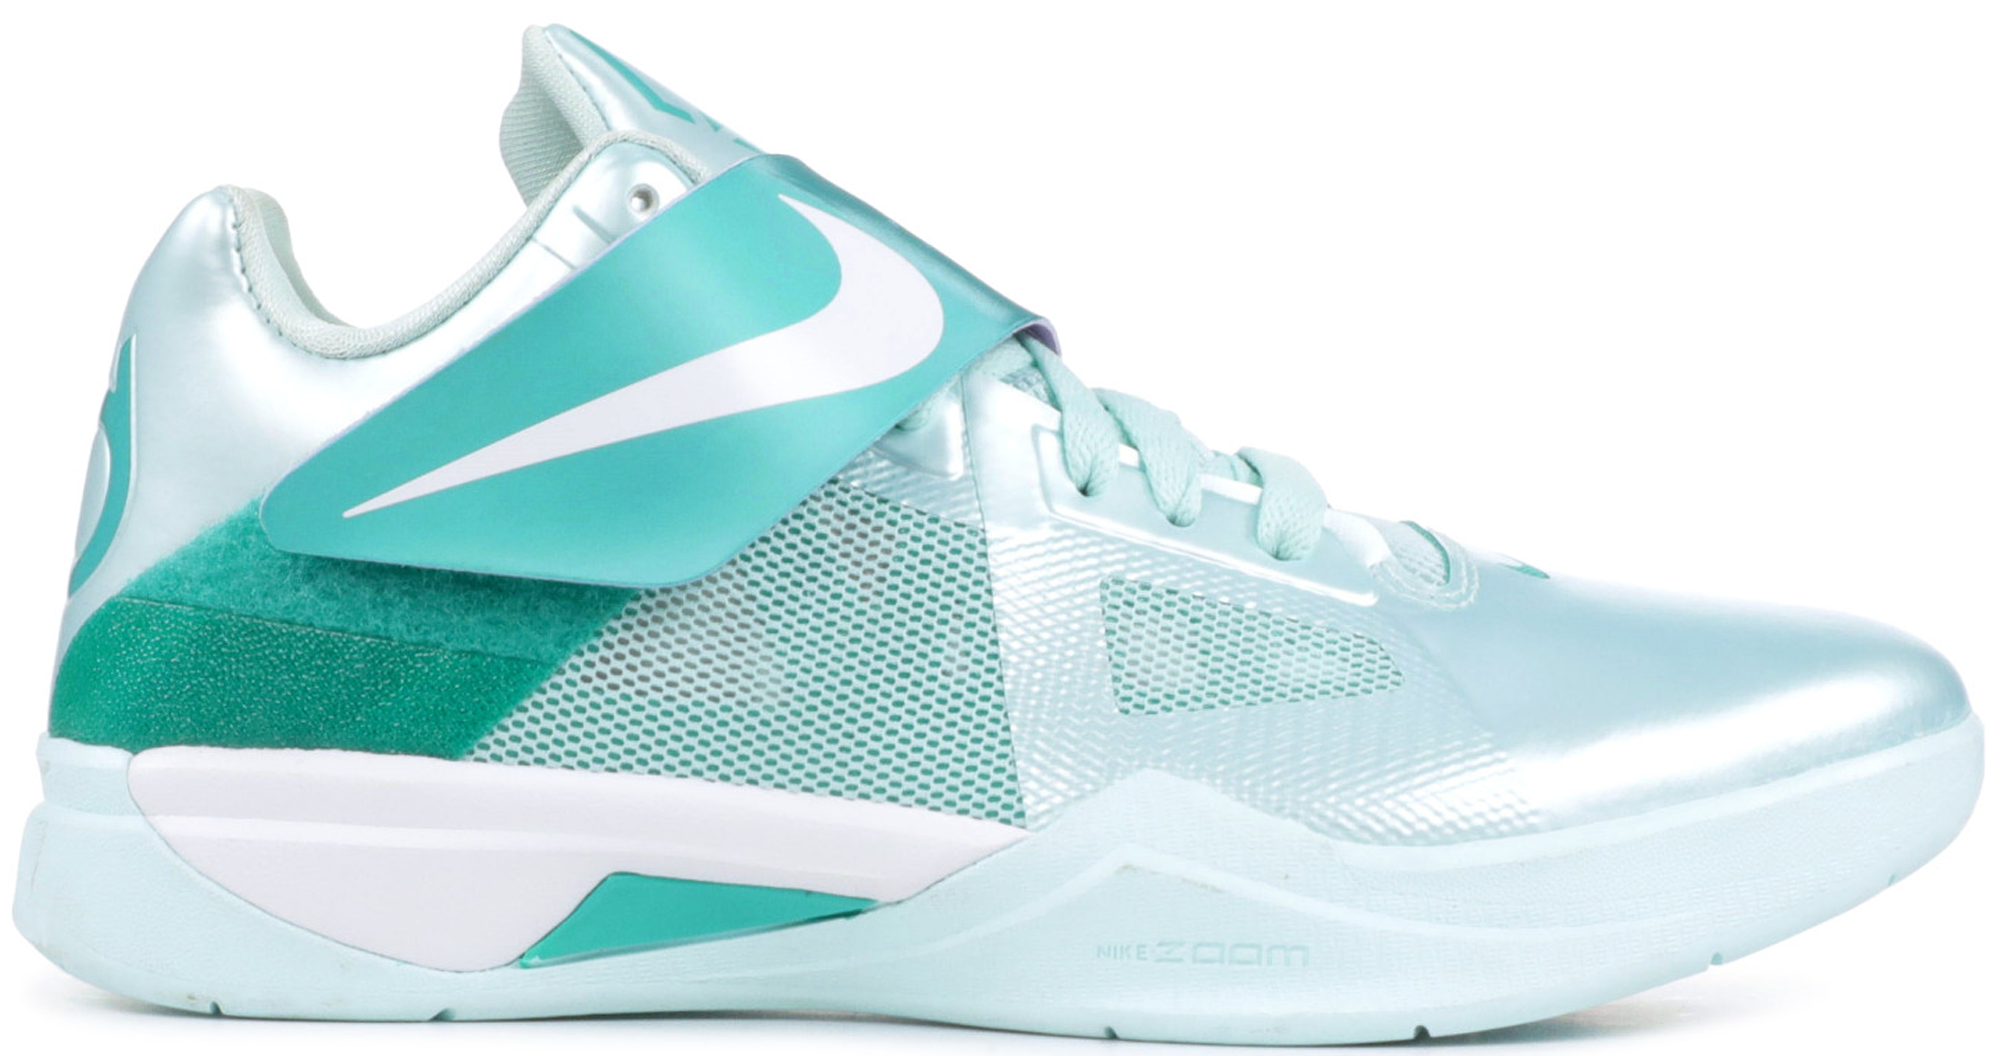 Nike KD 4 Easter 2012 (GS) - 479436-300